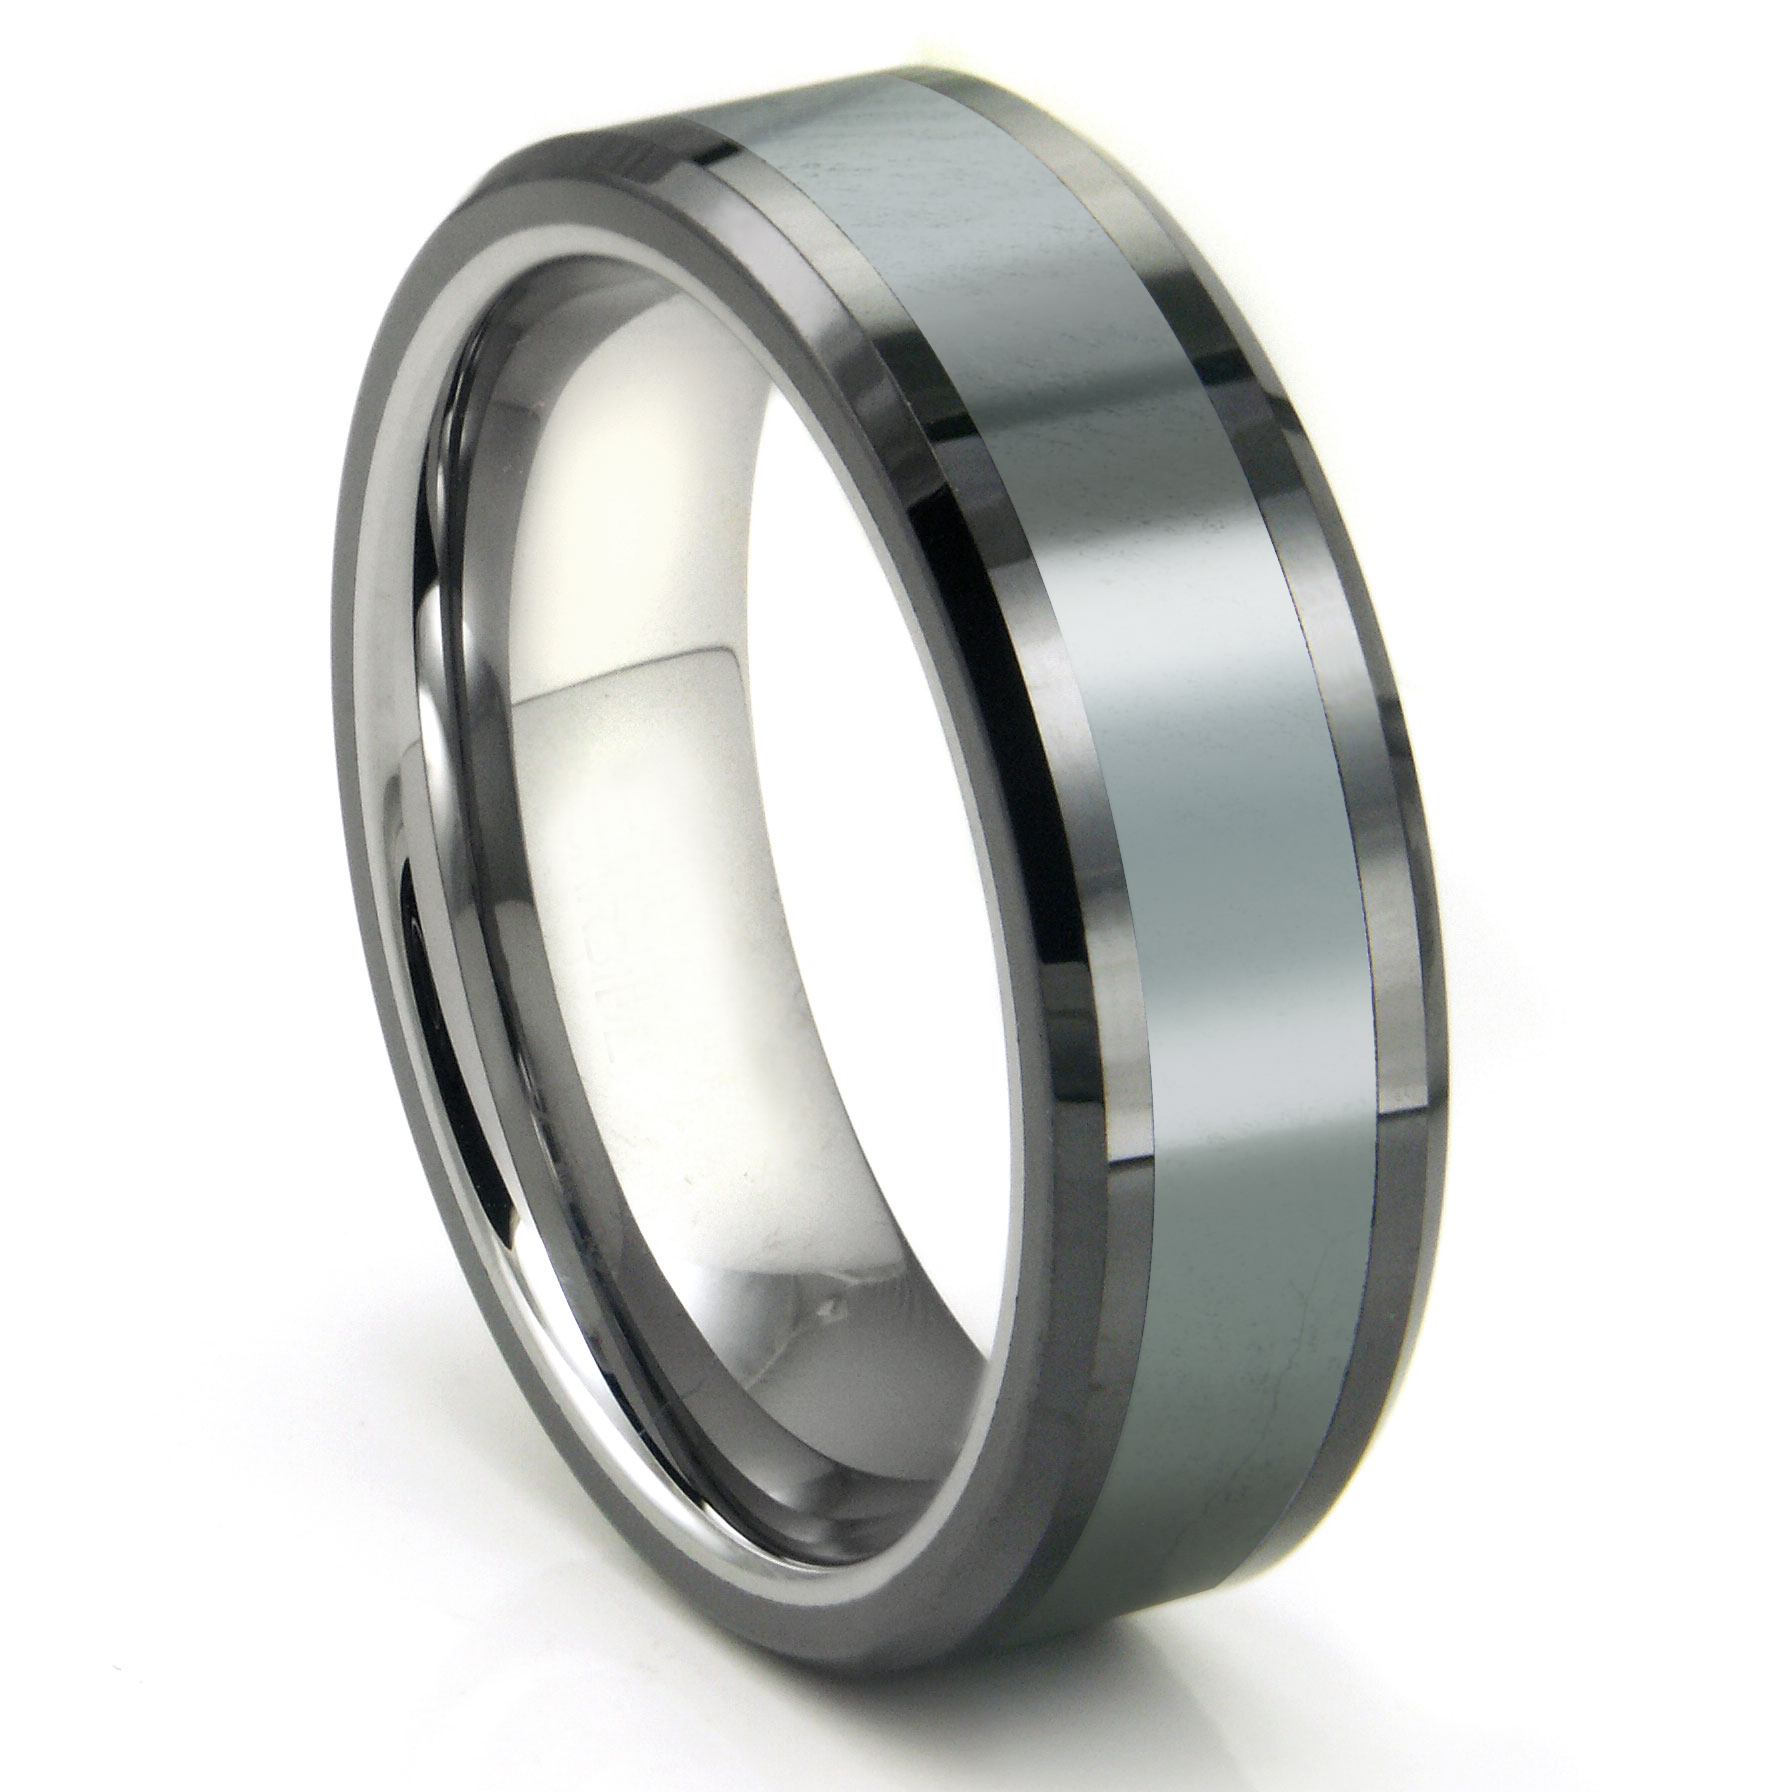 tungsten carbide grey meteorite inlay wedding band ring. Black Bedroom Furniture Sets. Home Design Ideas